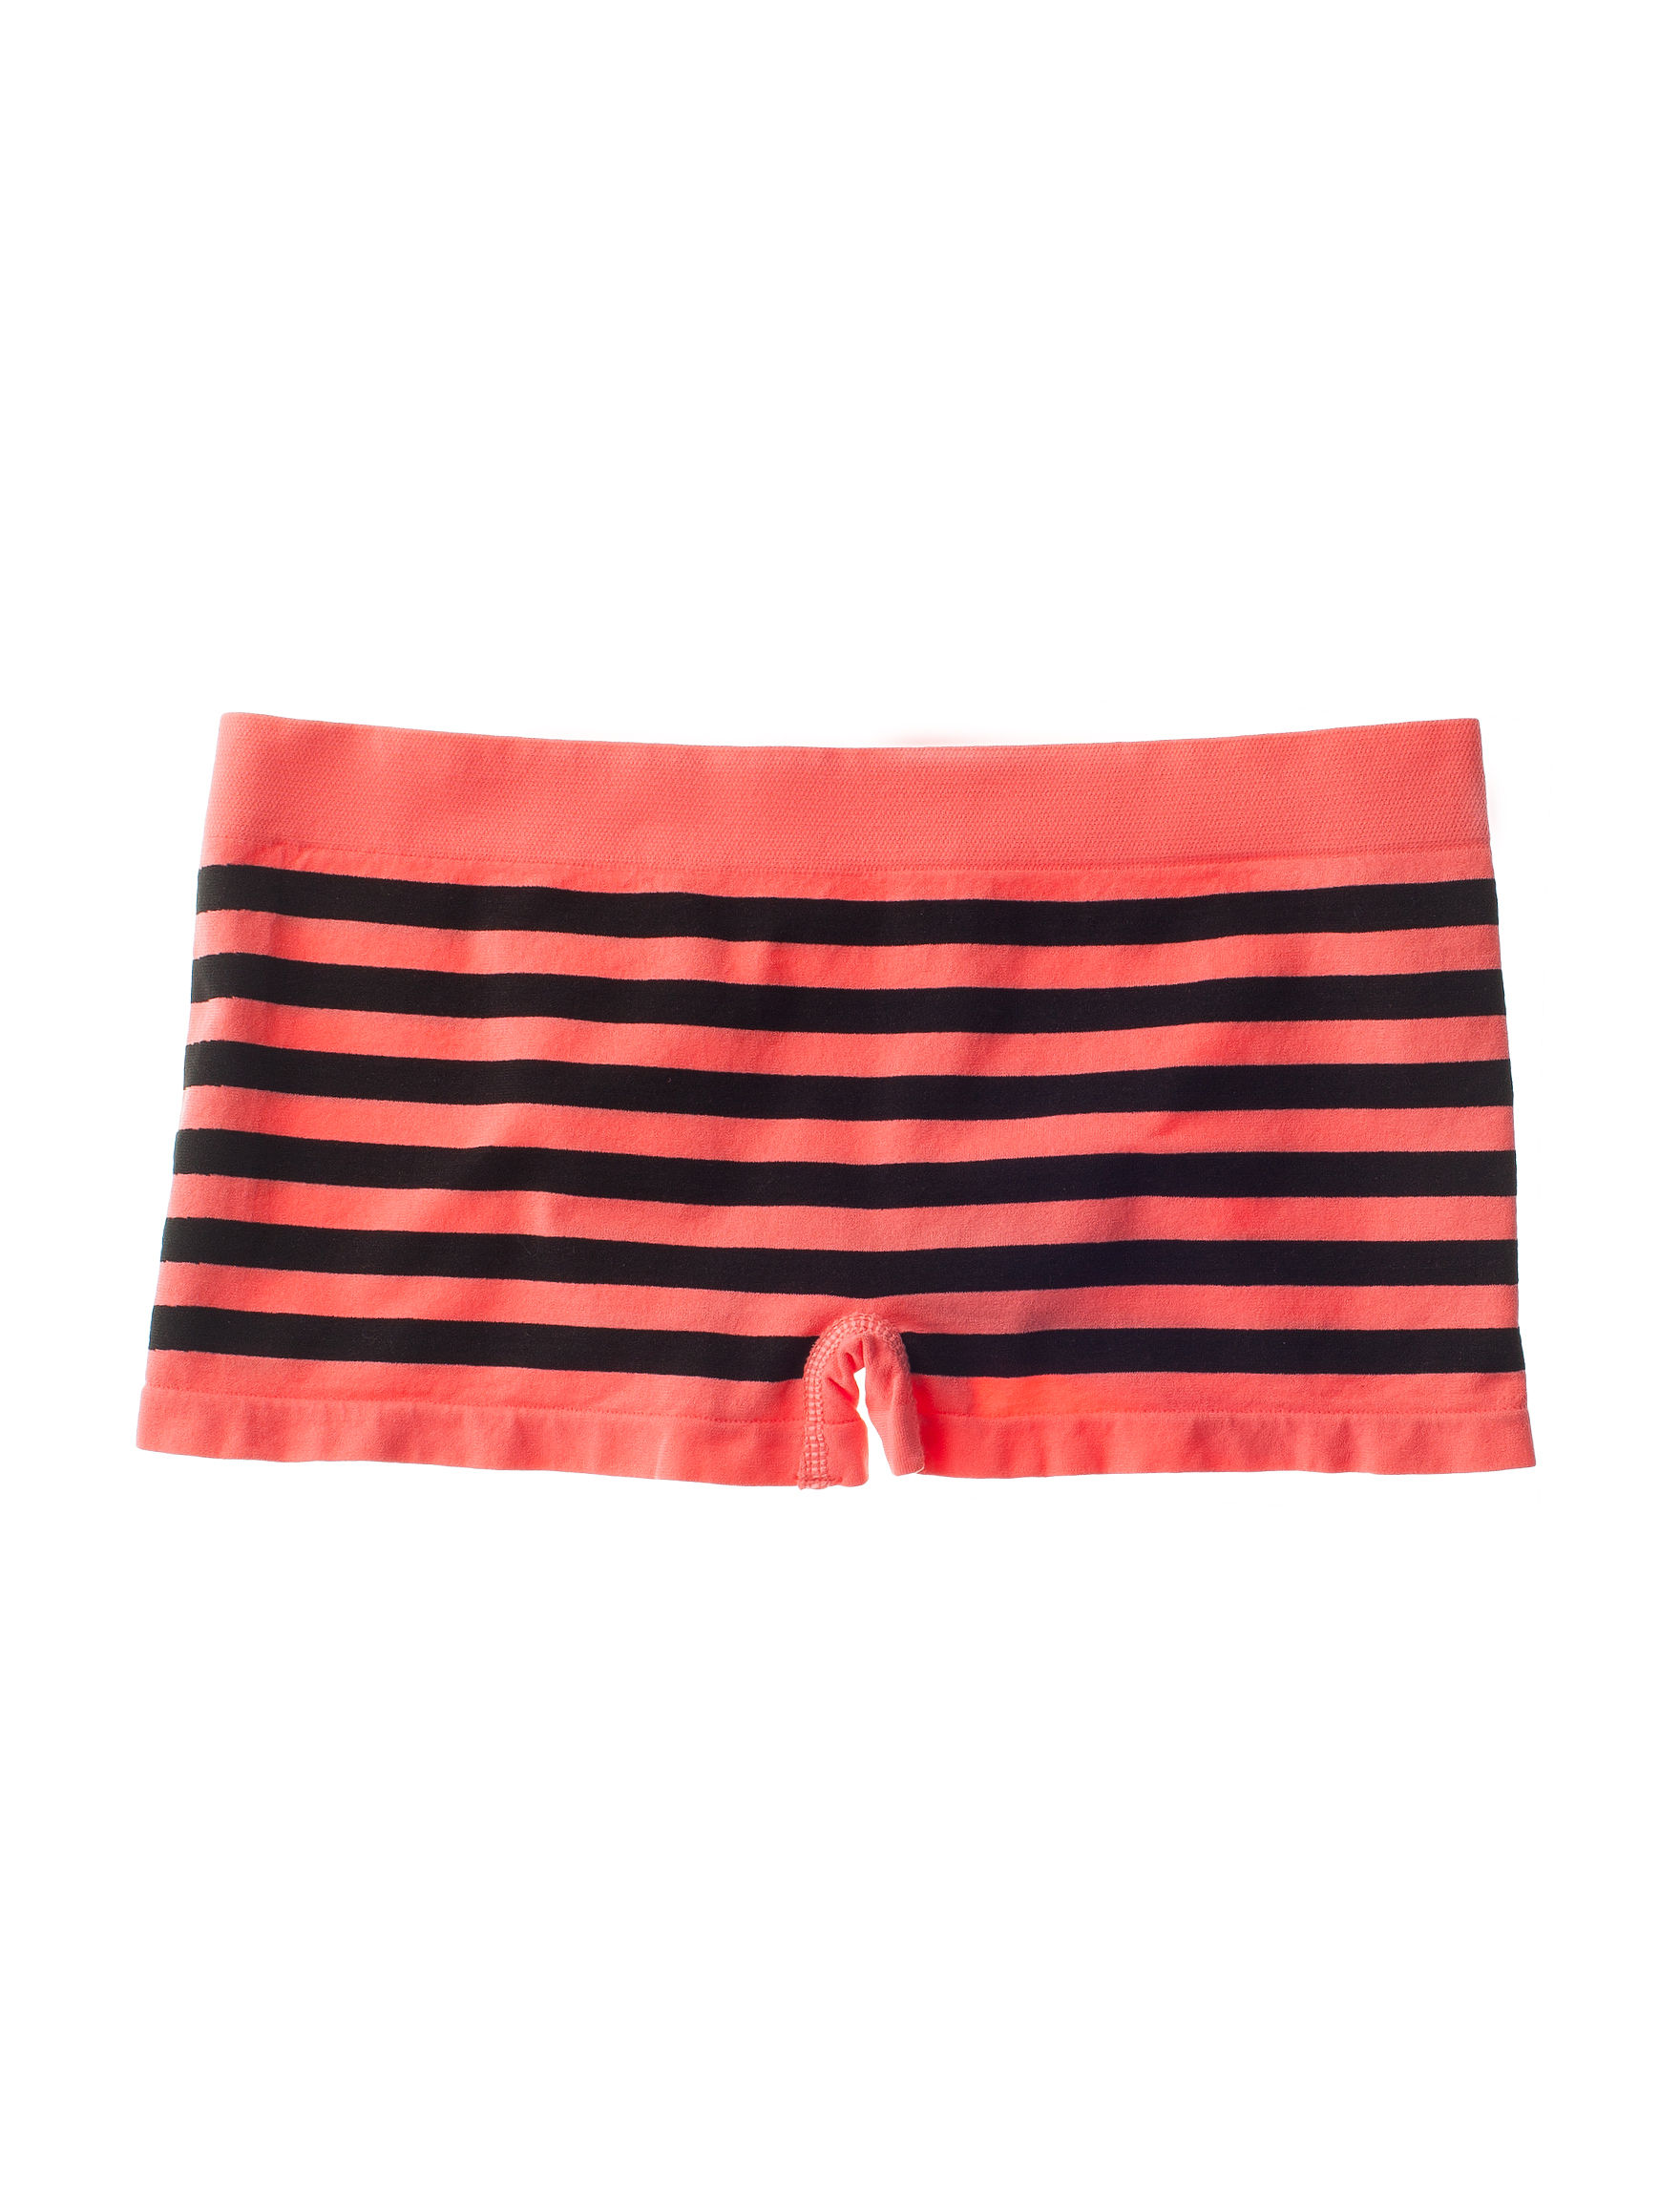 B Intimates Pink / Black Panties Boyshort